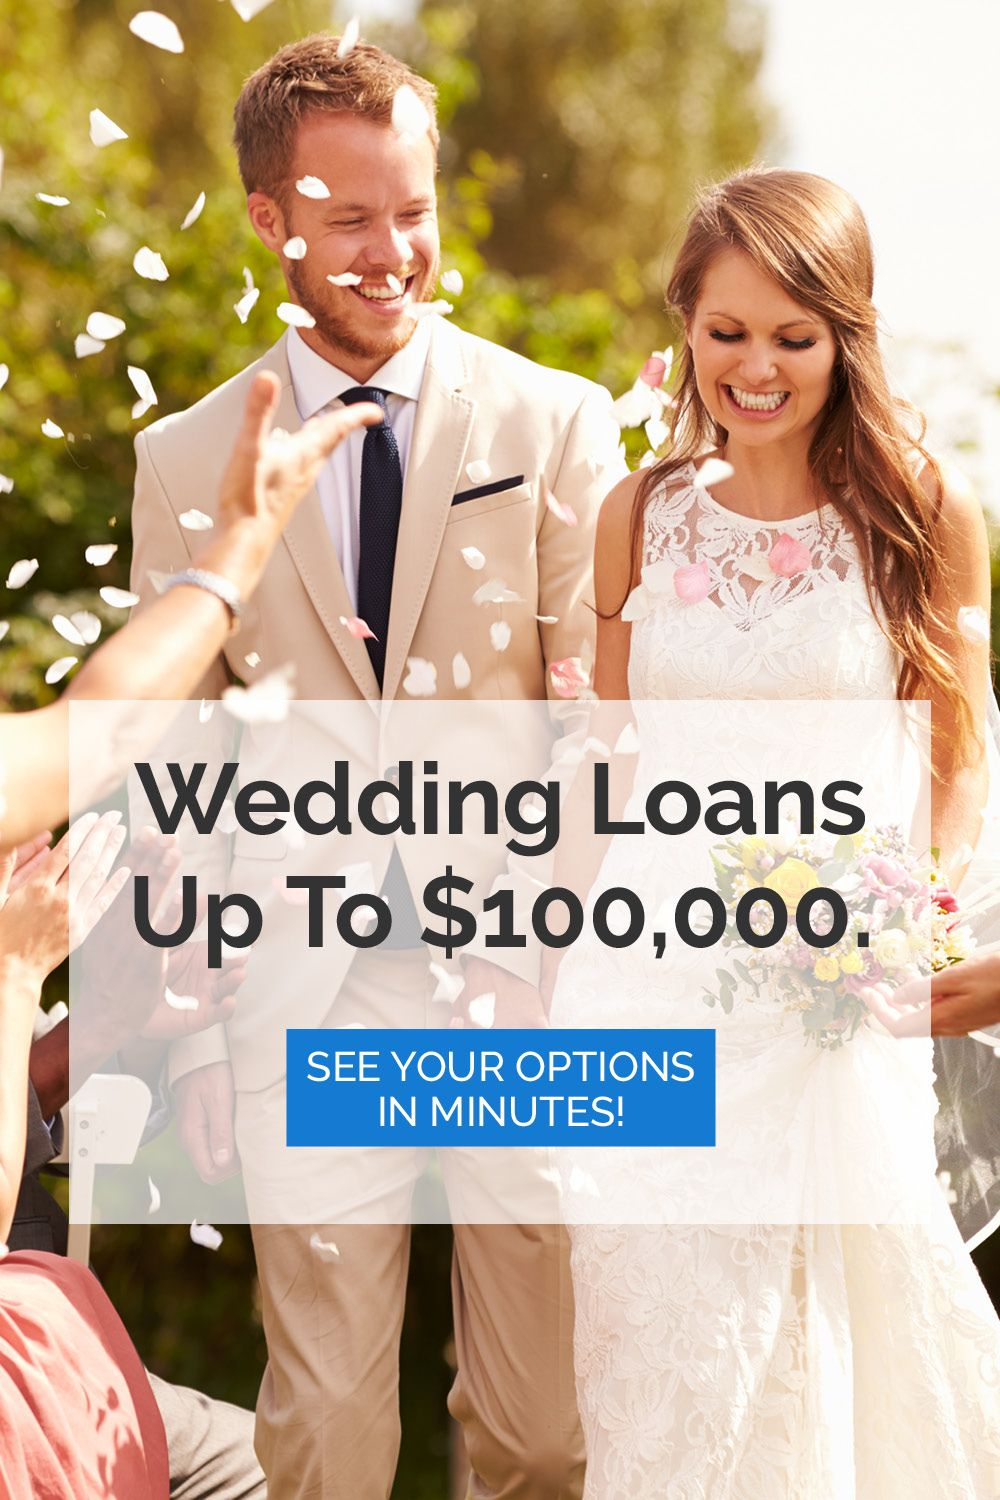 Loans Starting At 5k For Those With Good Credit Personal Loans Wedding Loans Best Loans